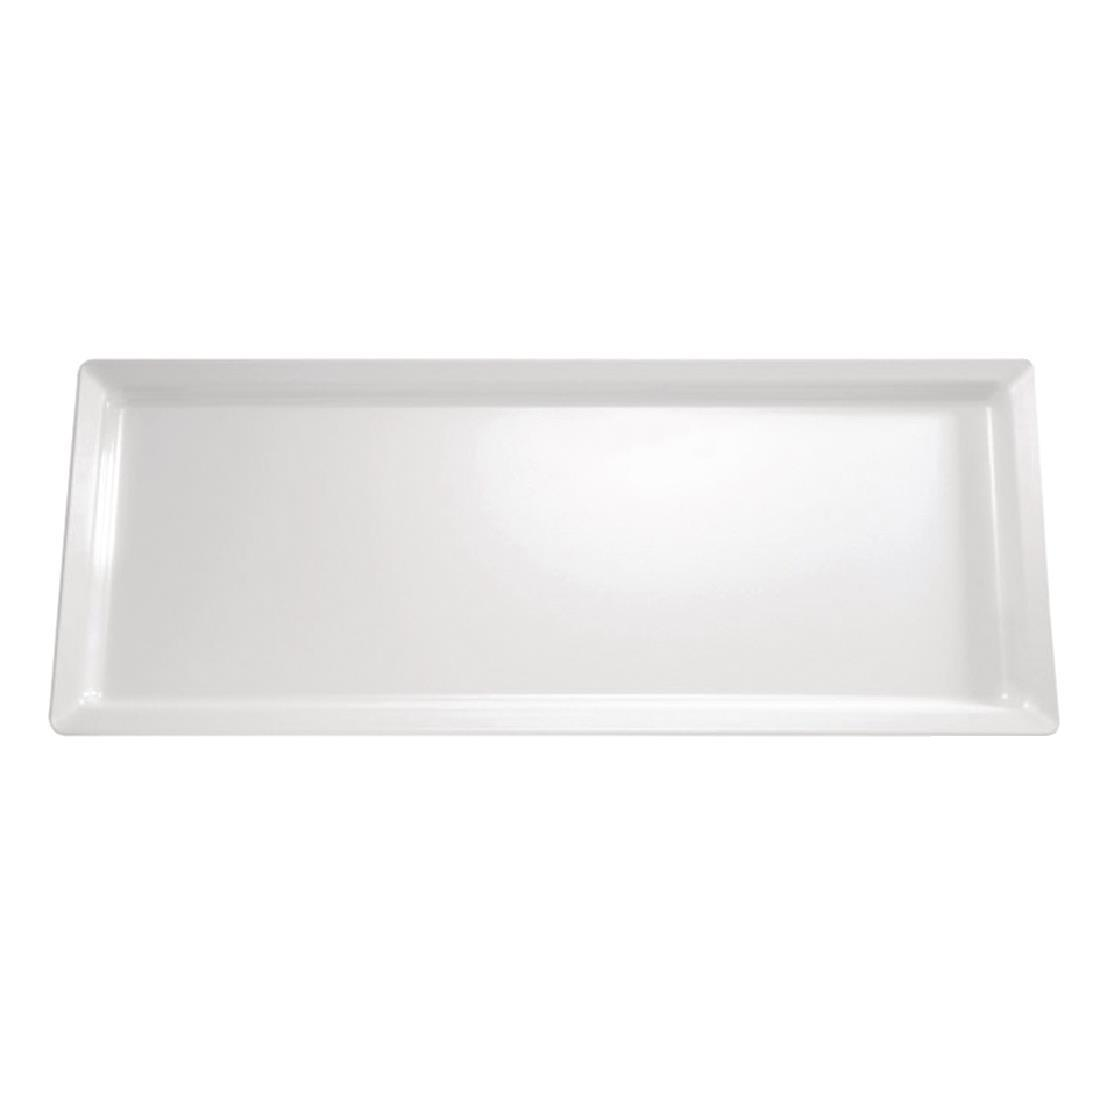 APS Pure Melamine Rectangular Tray White 650mm - Each - GF130